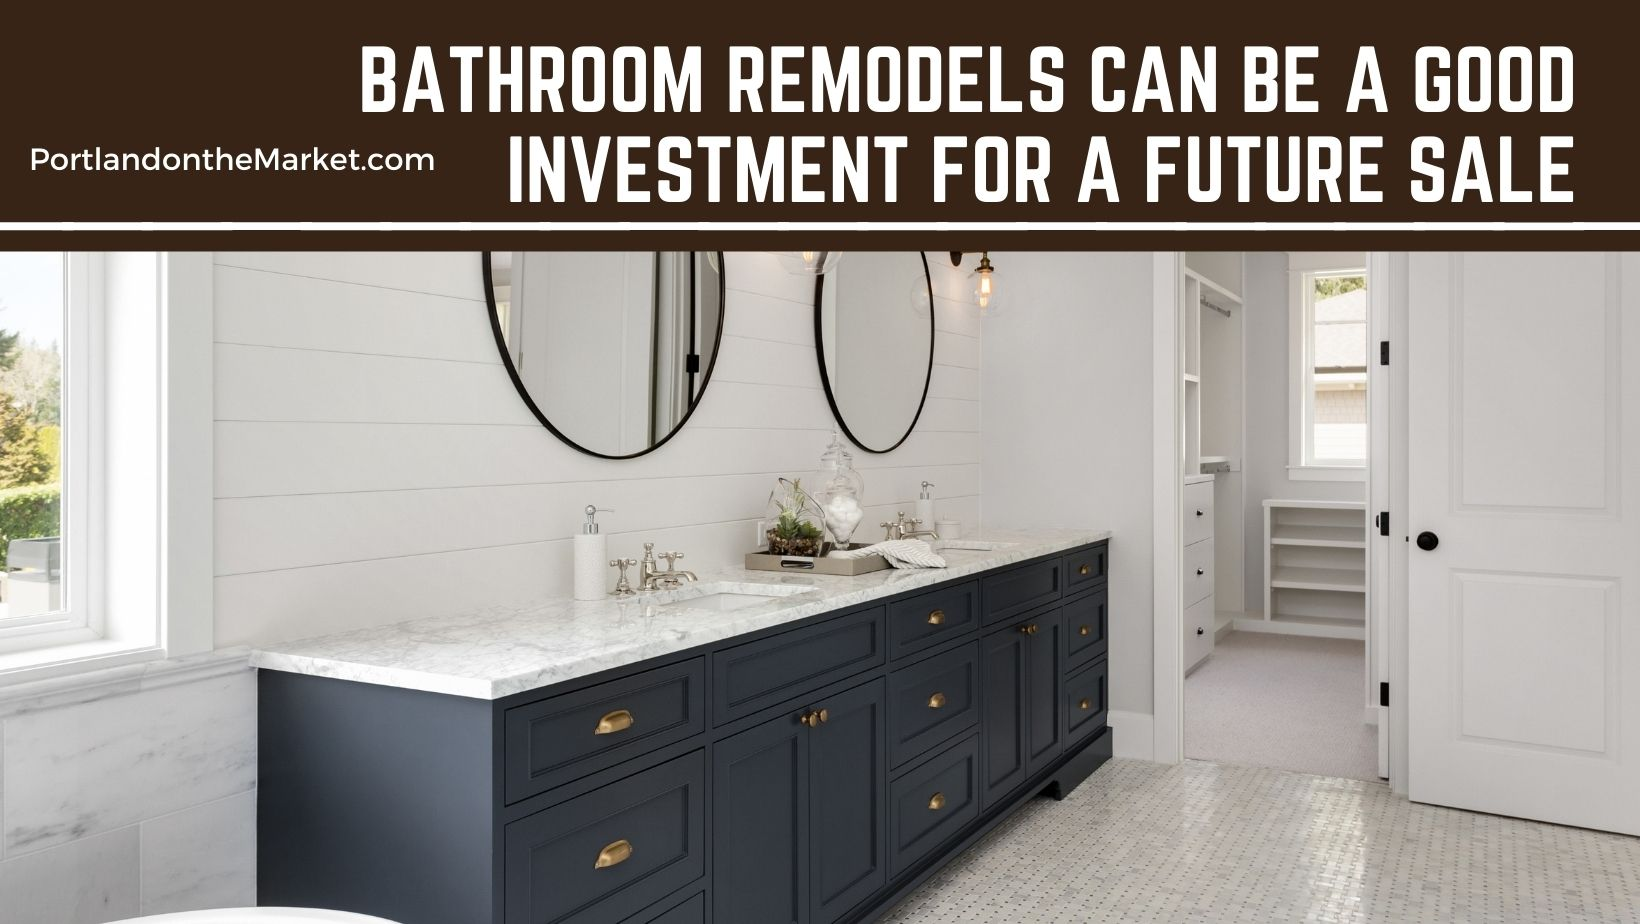 Bathroom Remodels can be a Good Investment for a Future Sale